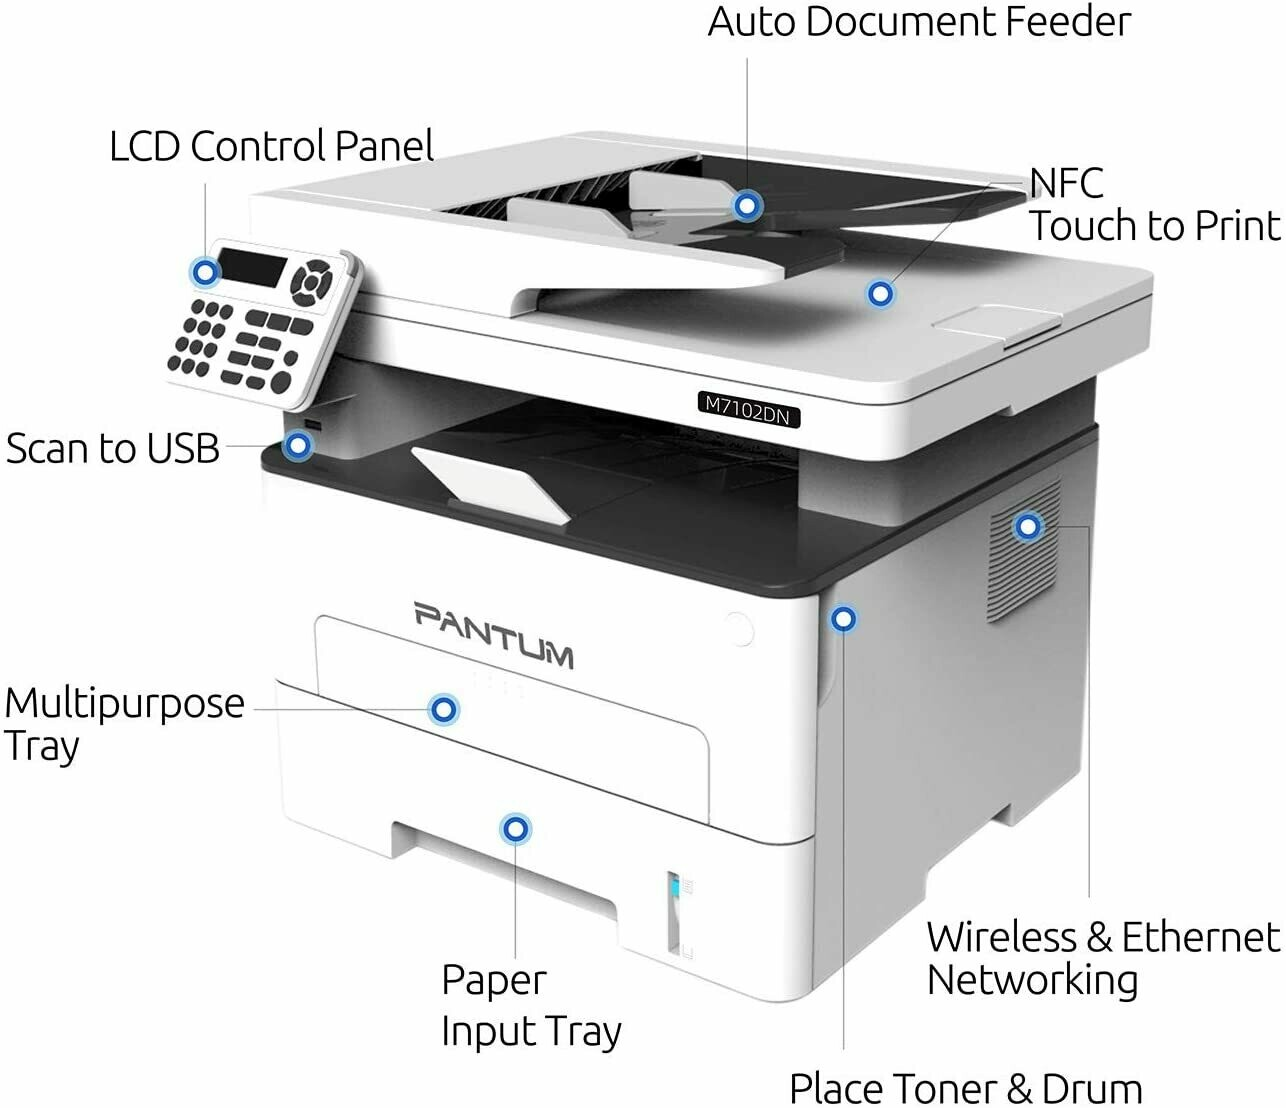 Pantum M7202FDW Monochrome Laser Multifunction Printer with Copier Scanner Fax, High Print and Copy Speed, Auto-Duplex Printing, Wireless Networking & USB 2.0